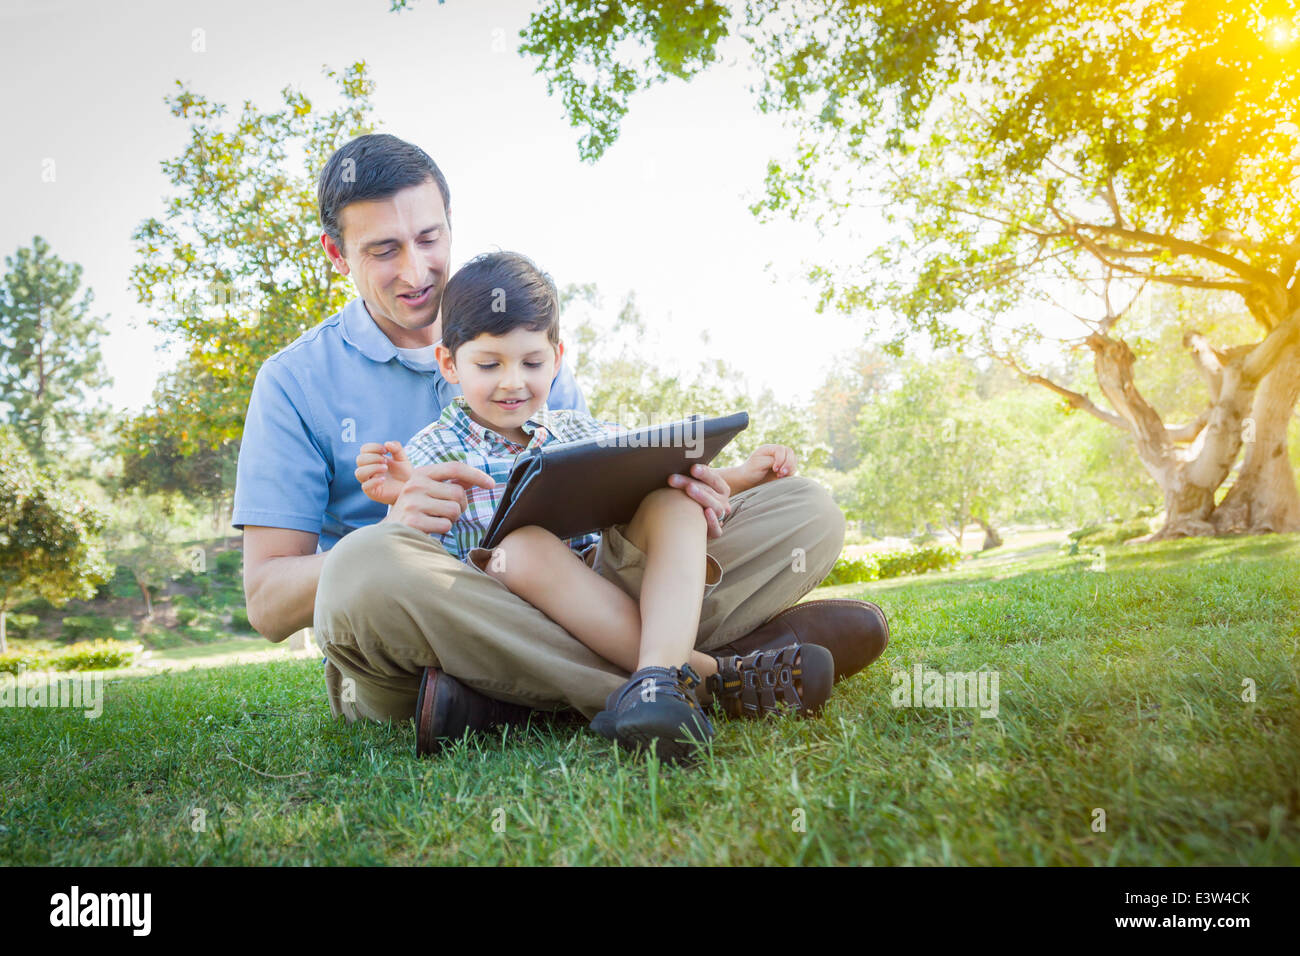 Handsome Mixed Race Father and Son Playing on a Computer Tablet Outside. - Stock Image